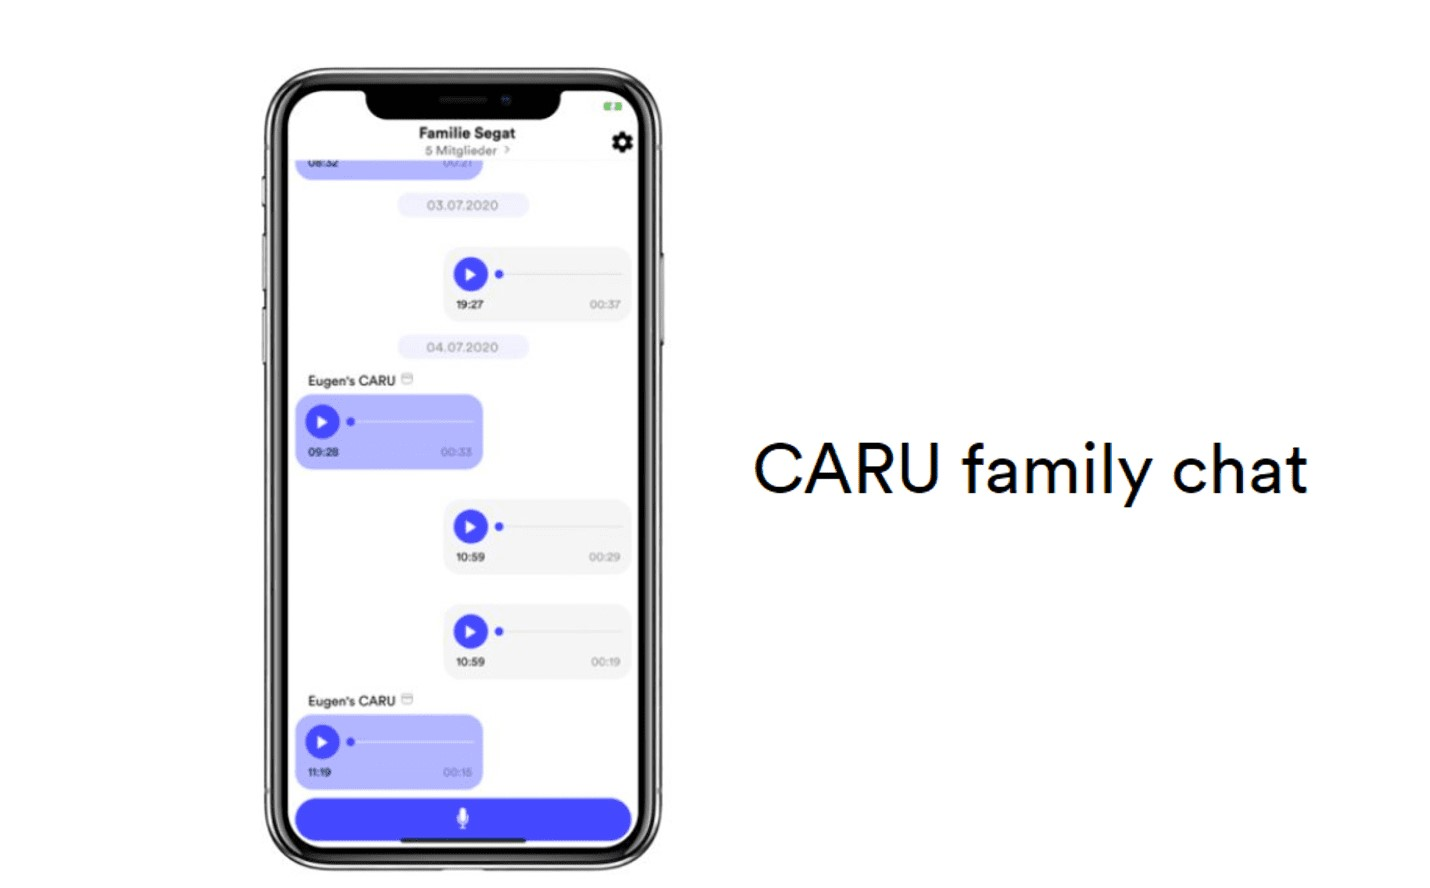 Caru family chat